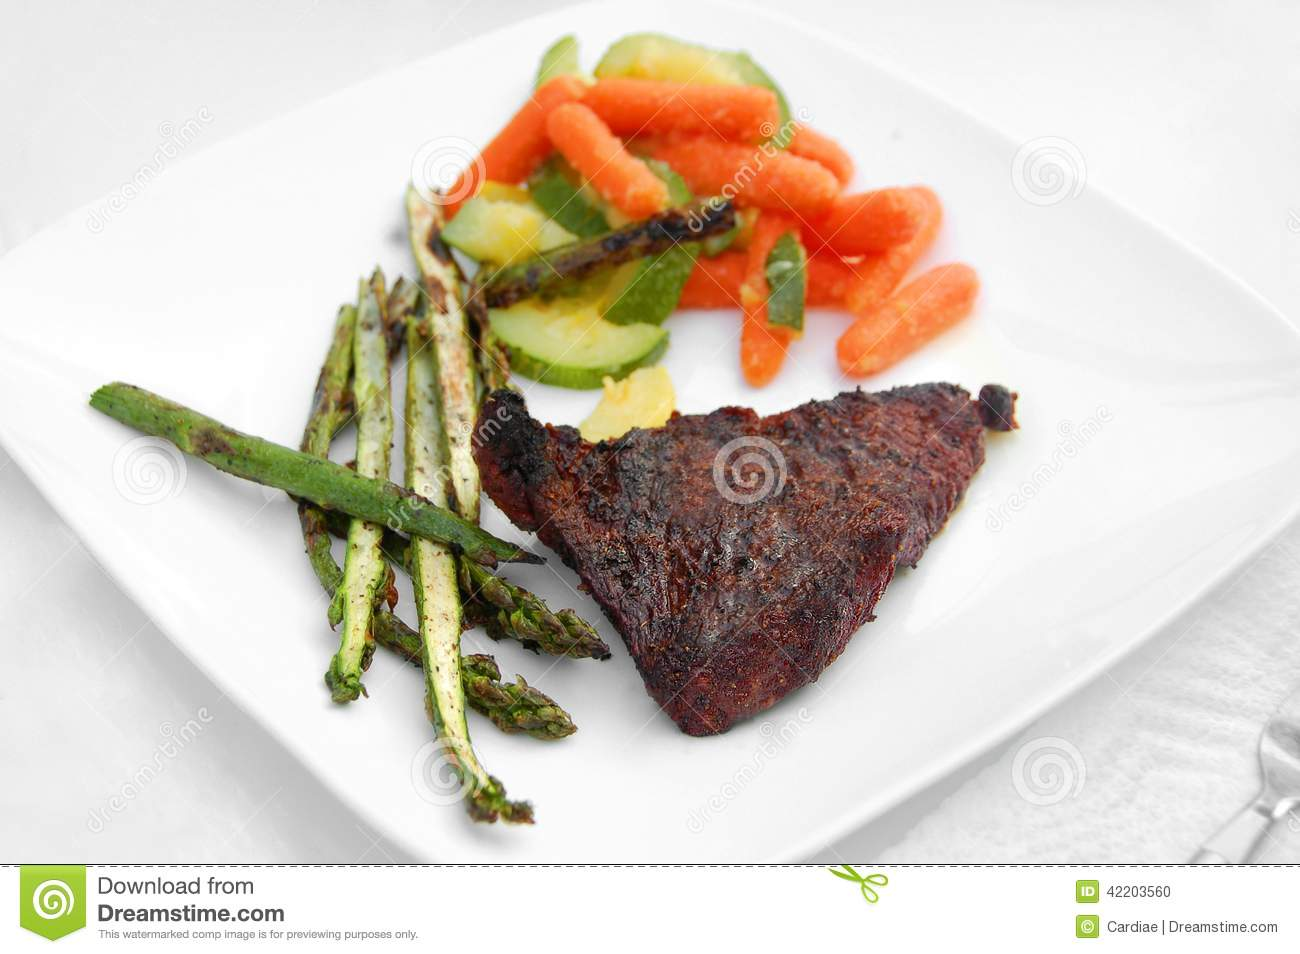 Healthy Meal Barbecue Grill Cookout Meat Steak Vegetables